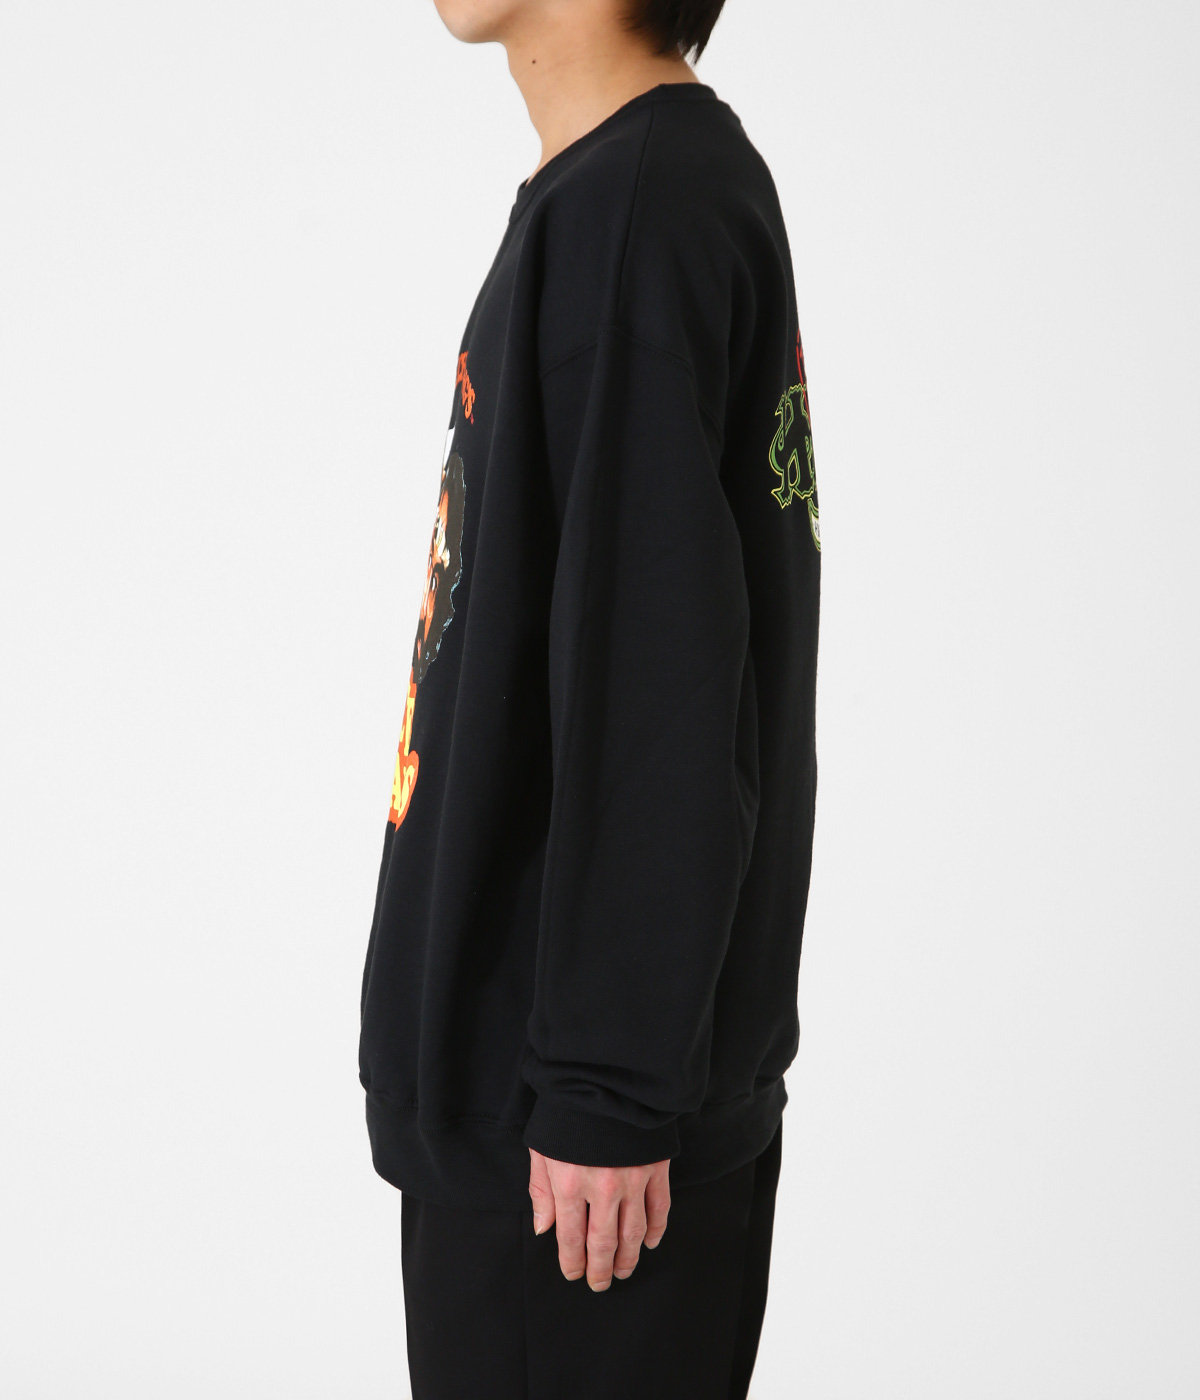 NICE DREAMS / CREW NECK SWEAT SHIRT ( TYPE-3 )